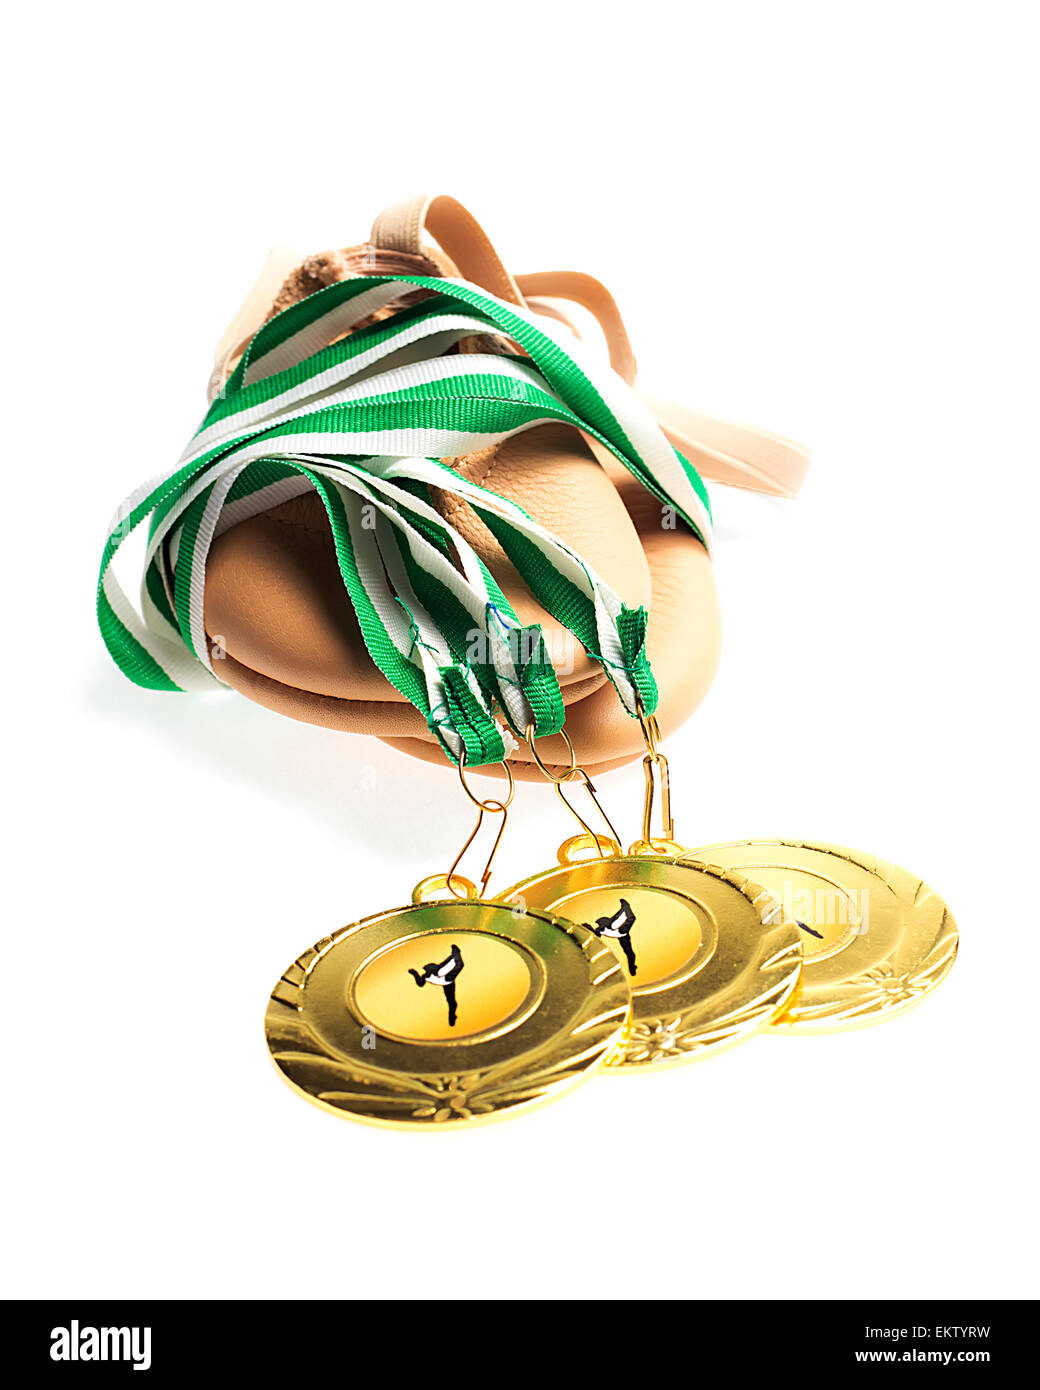 Gold Medals with  Gym shoes on White background - Stock Image